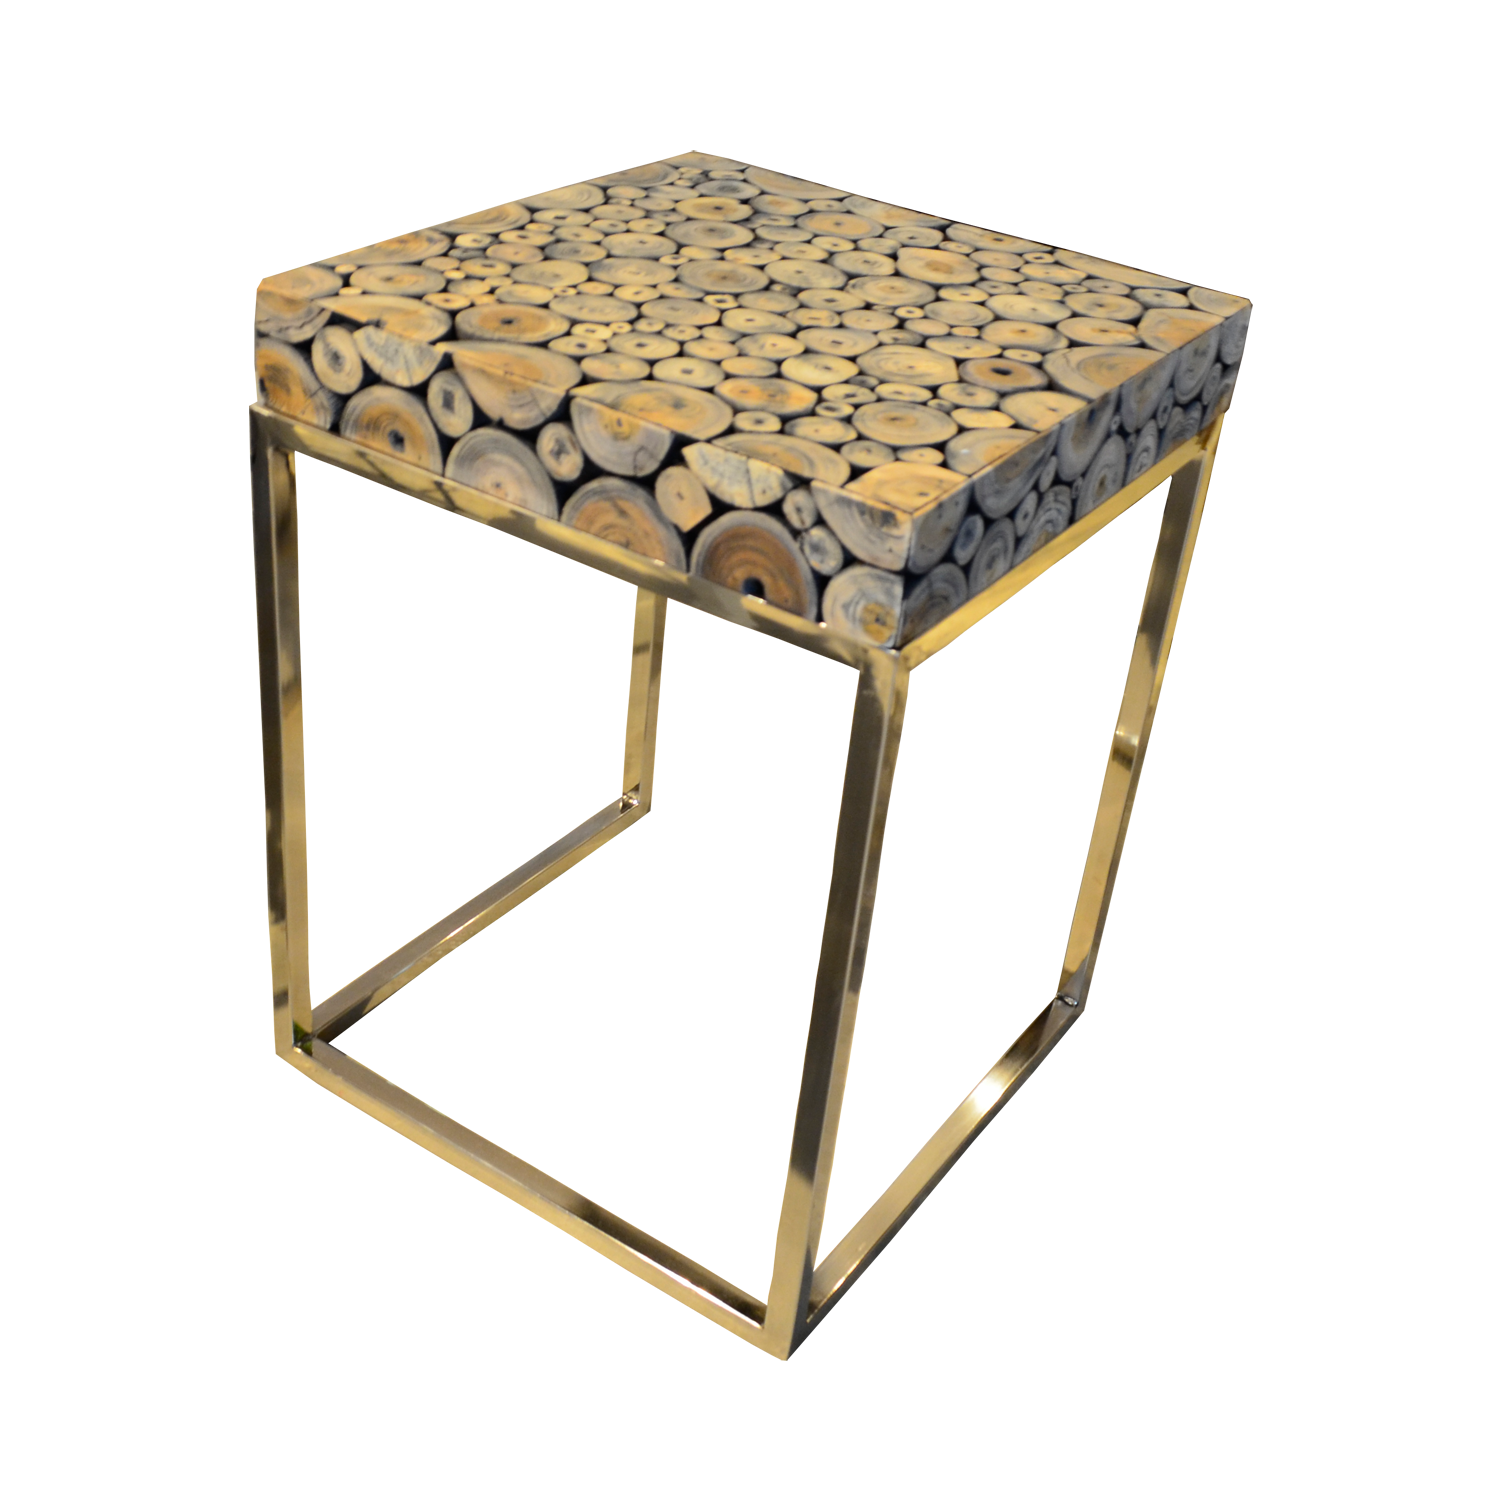 Round Coffee Table With Storage Singapore: T57 Round Wood Mosaic Coffee Table C